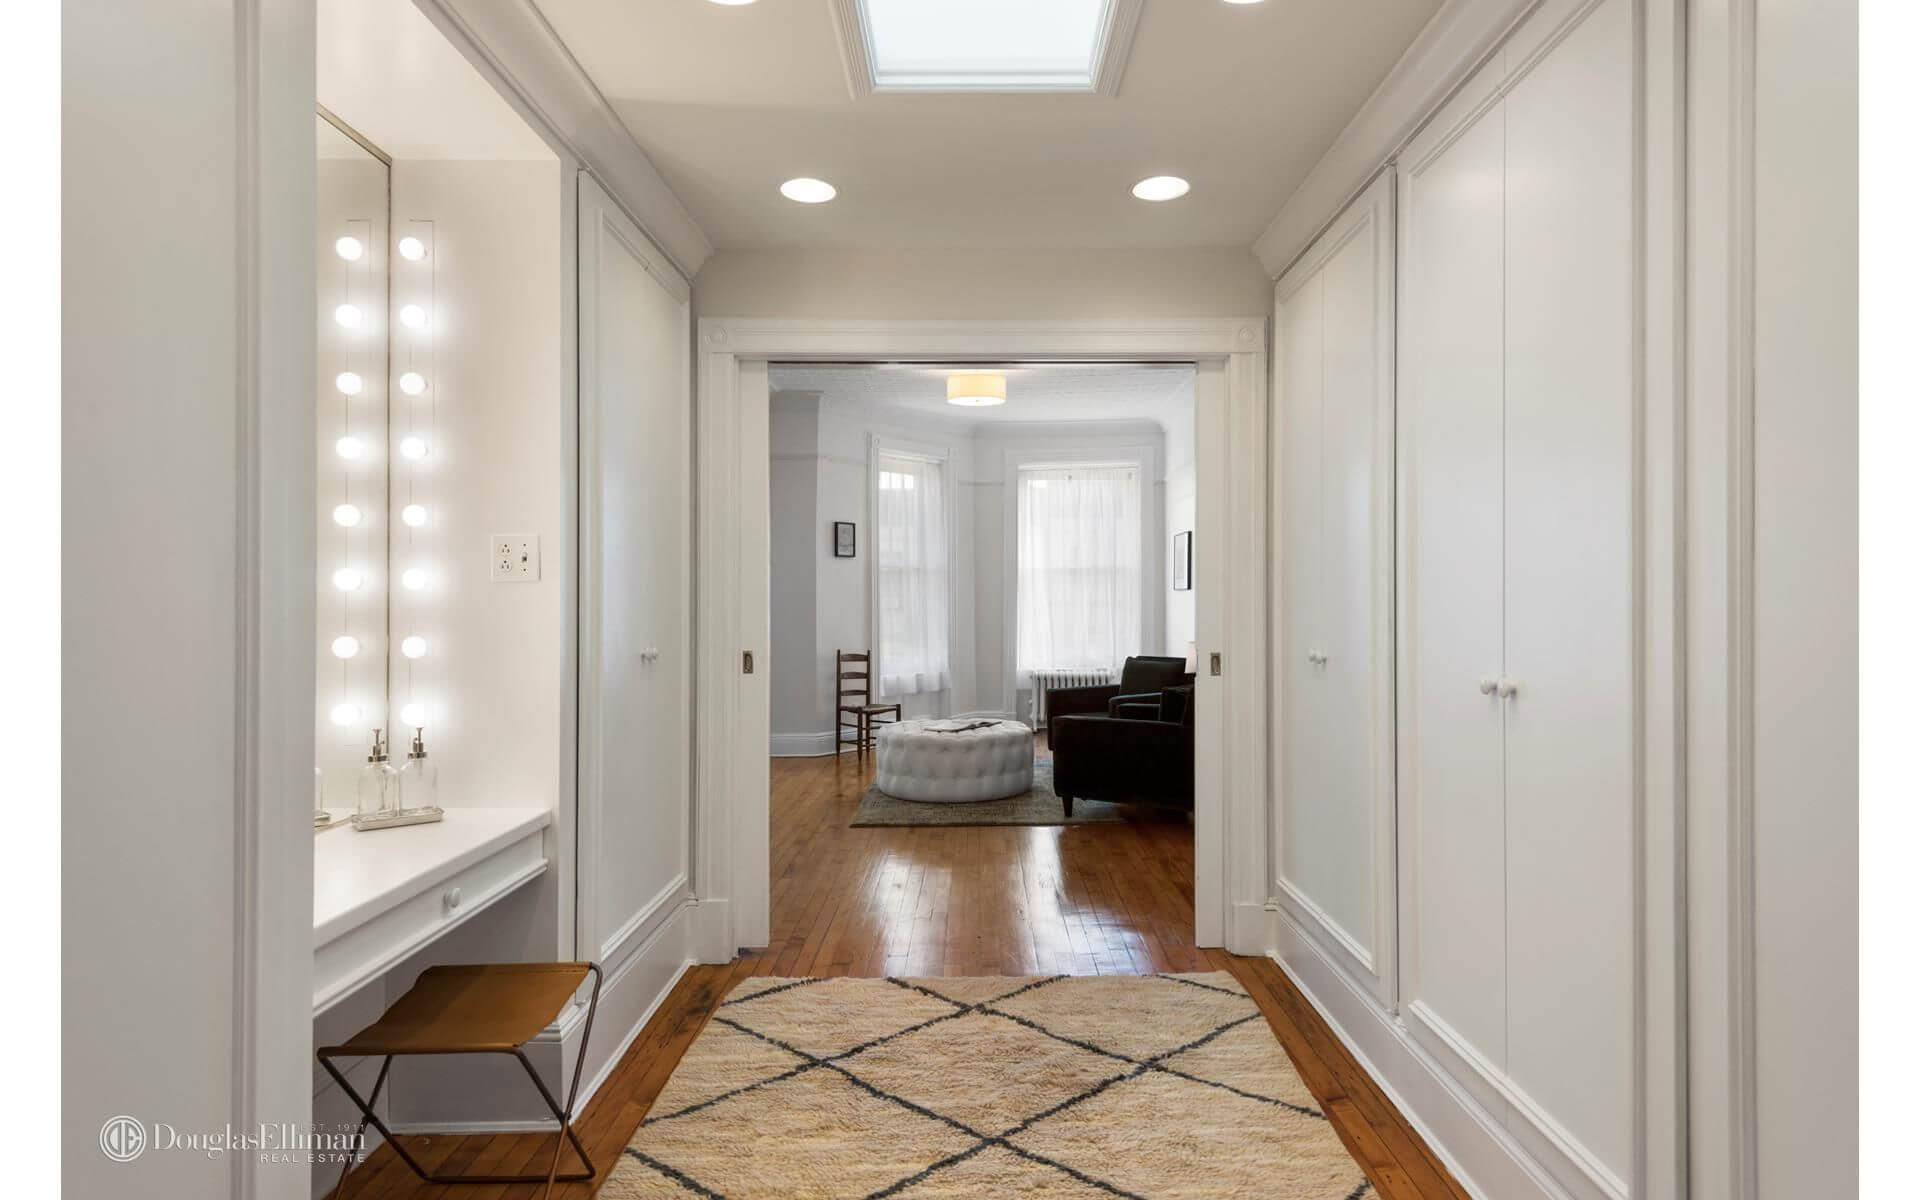 Brooklyn Homes for Sale in Park Slope at 426 4th Street